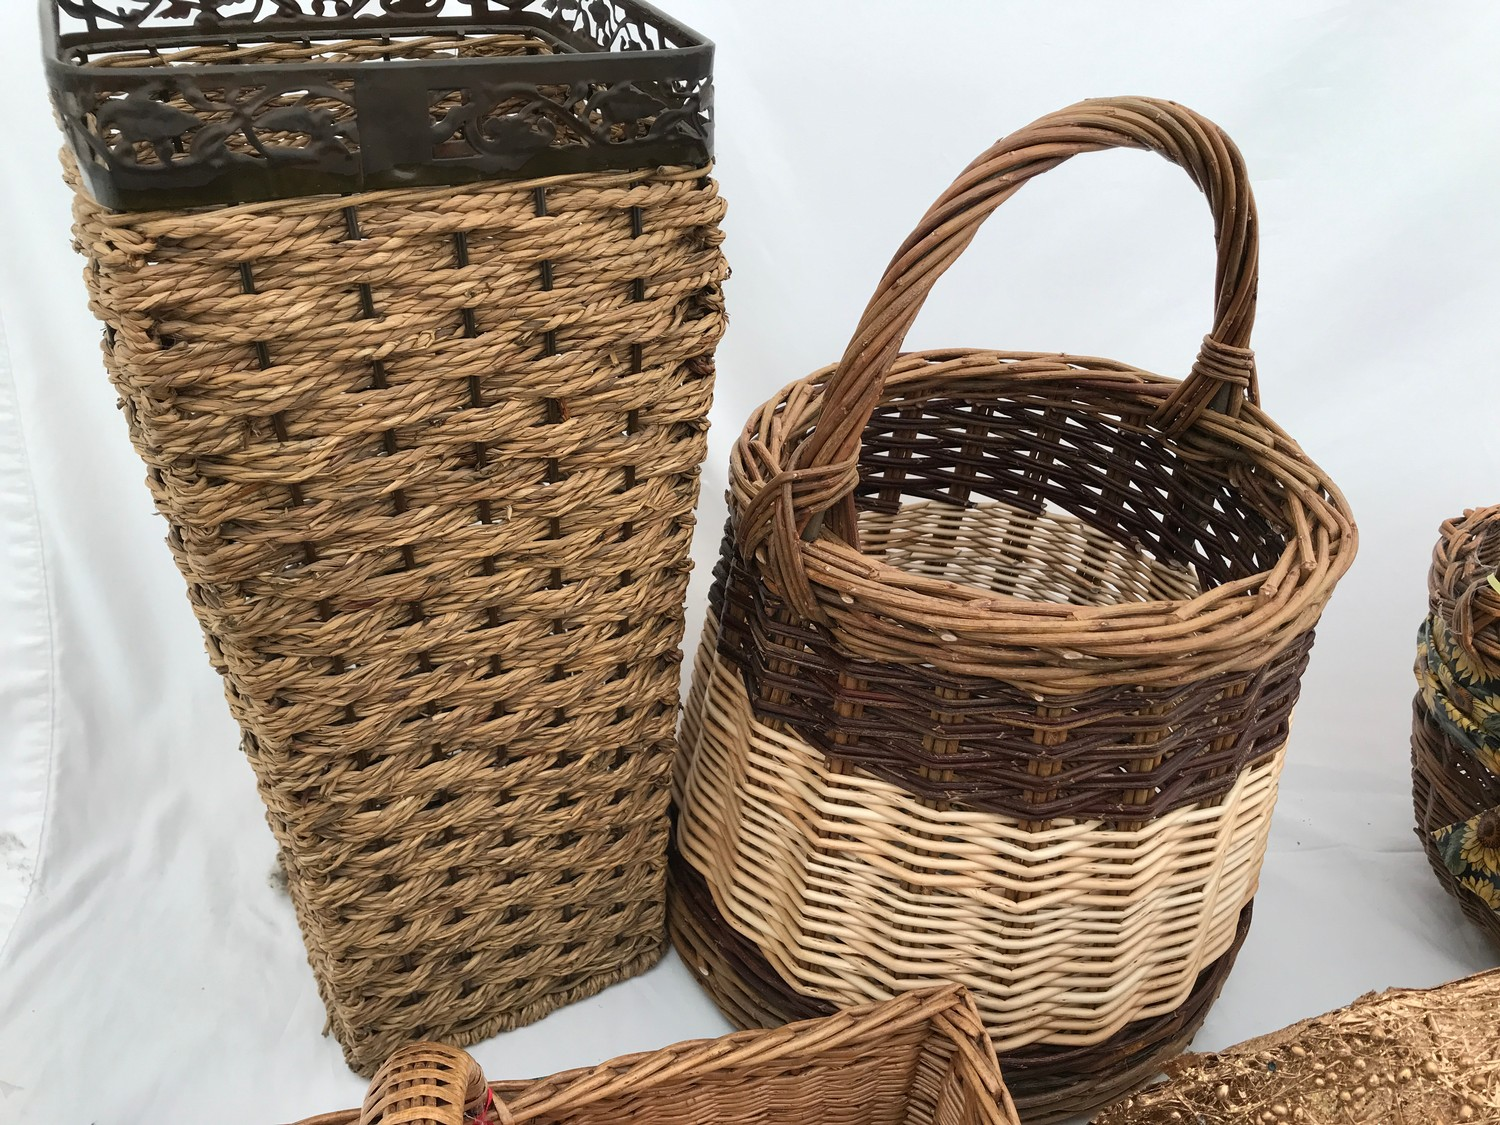 A selection of wicker baskets including a cutlery basket, french bread basket and others.Condition - Image 3 of 3